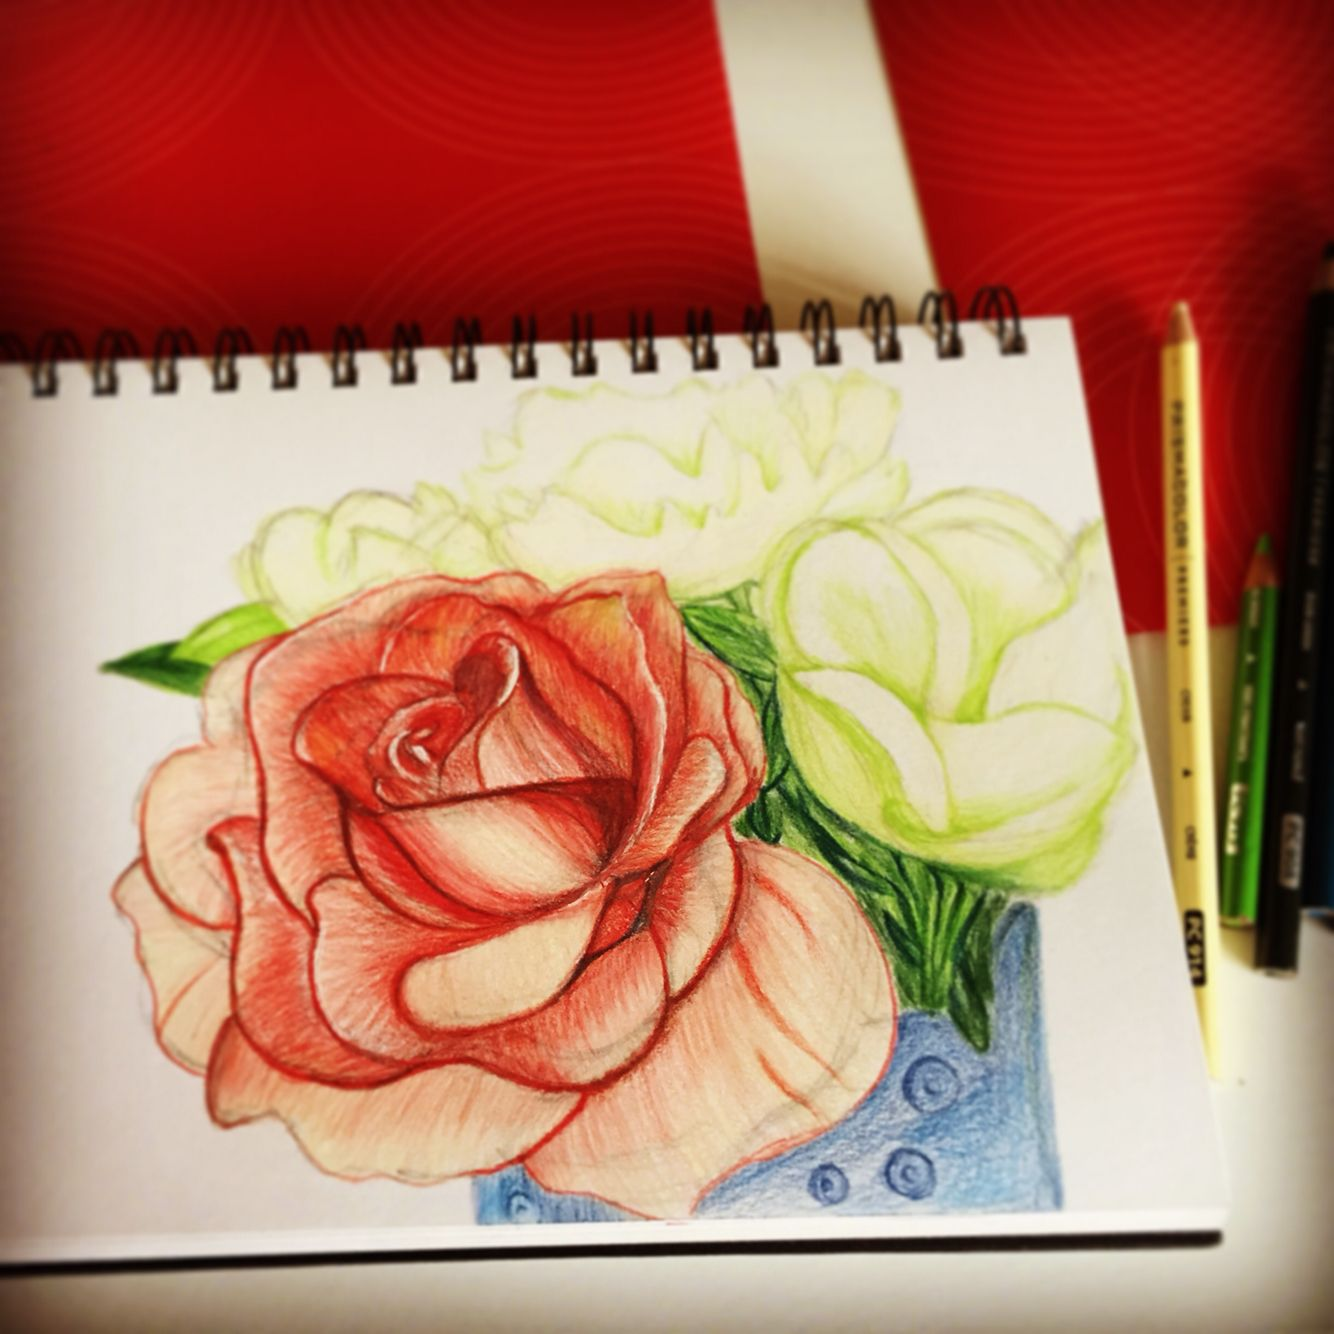 Colored pencil - flowers - by Stingna   Arts life   Pinterest ...